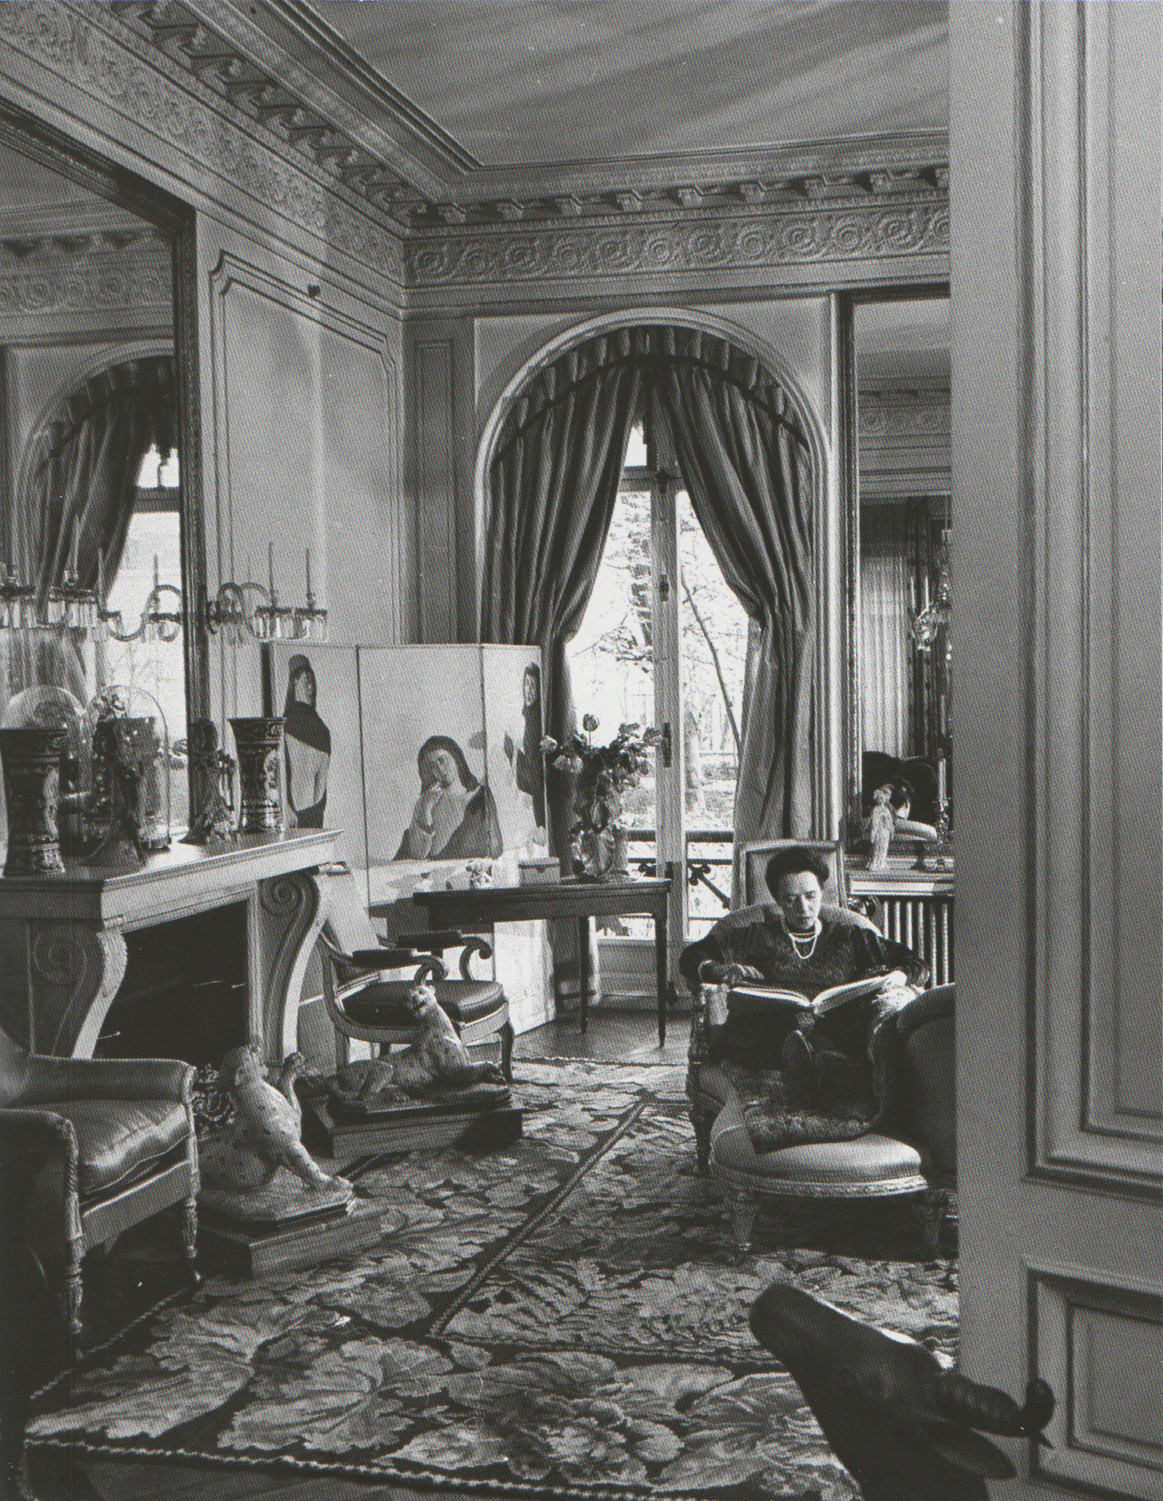 The Devoted Classicist: How They Decorated